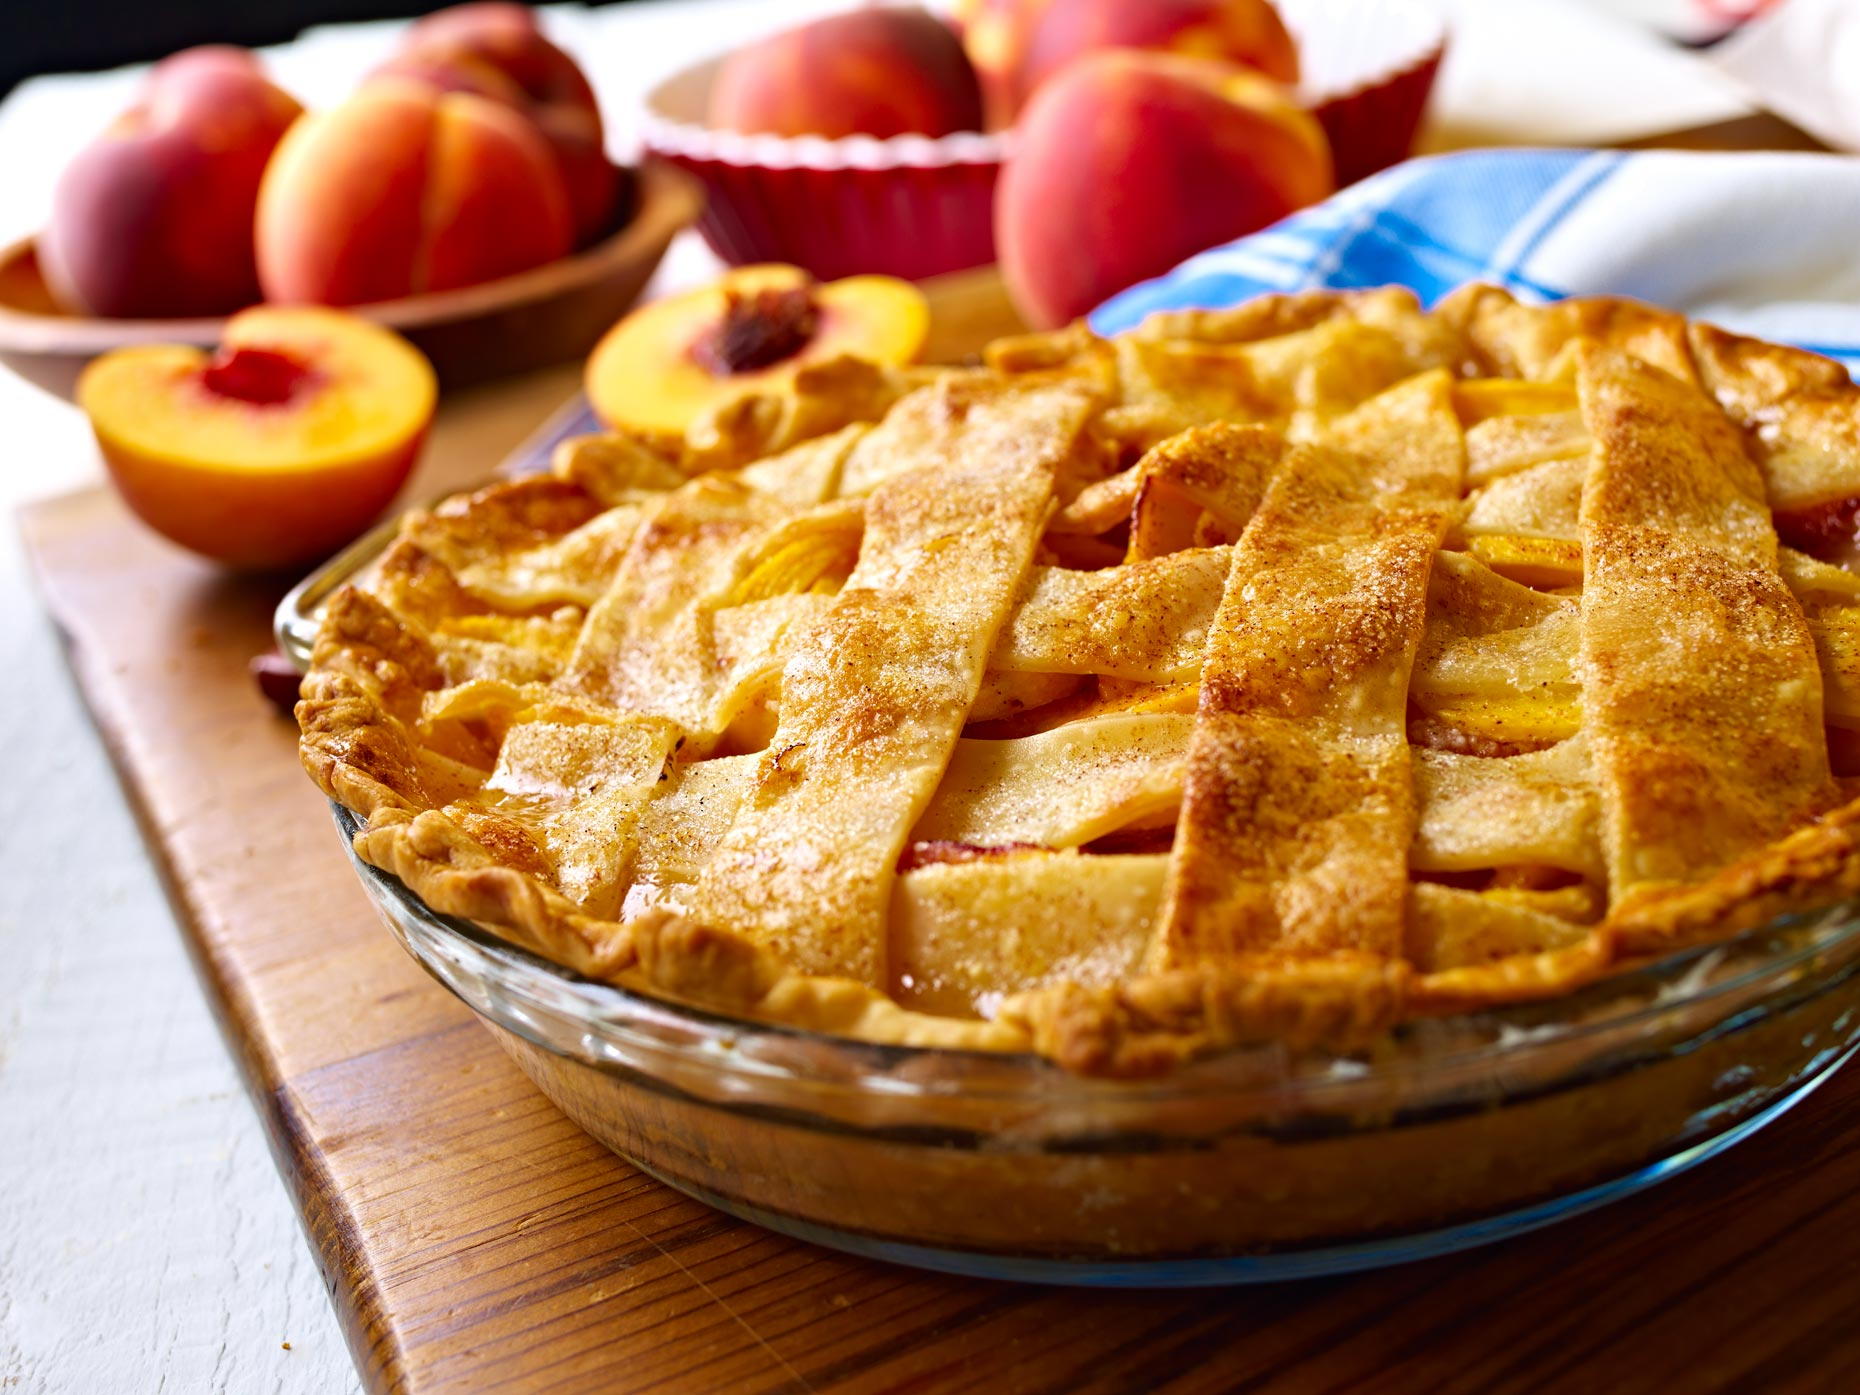 Dessert Photography | Peach Pie & Peaches